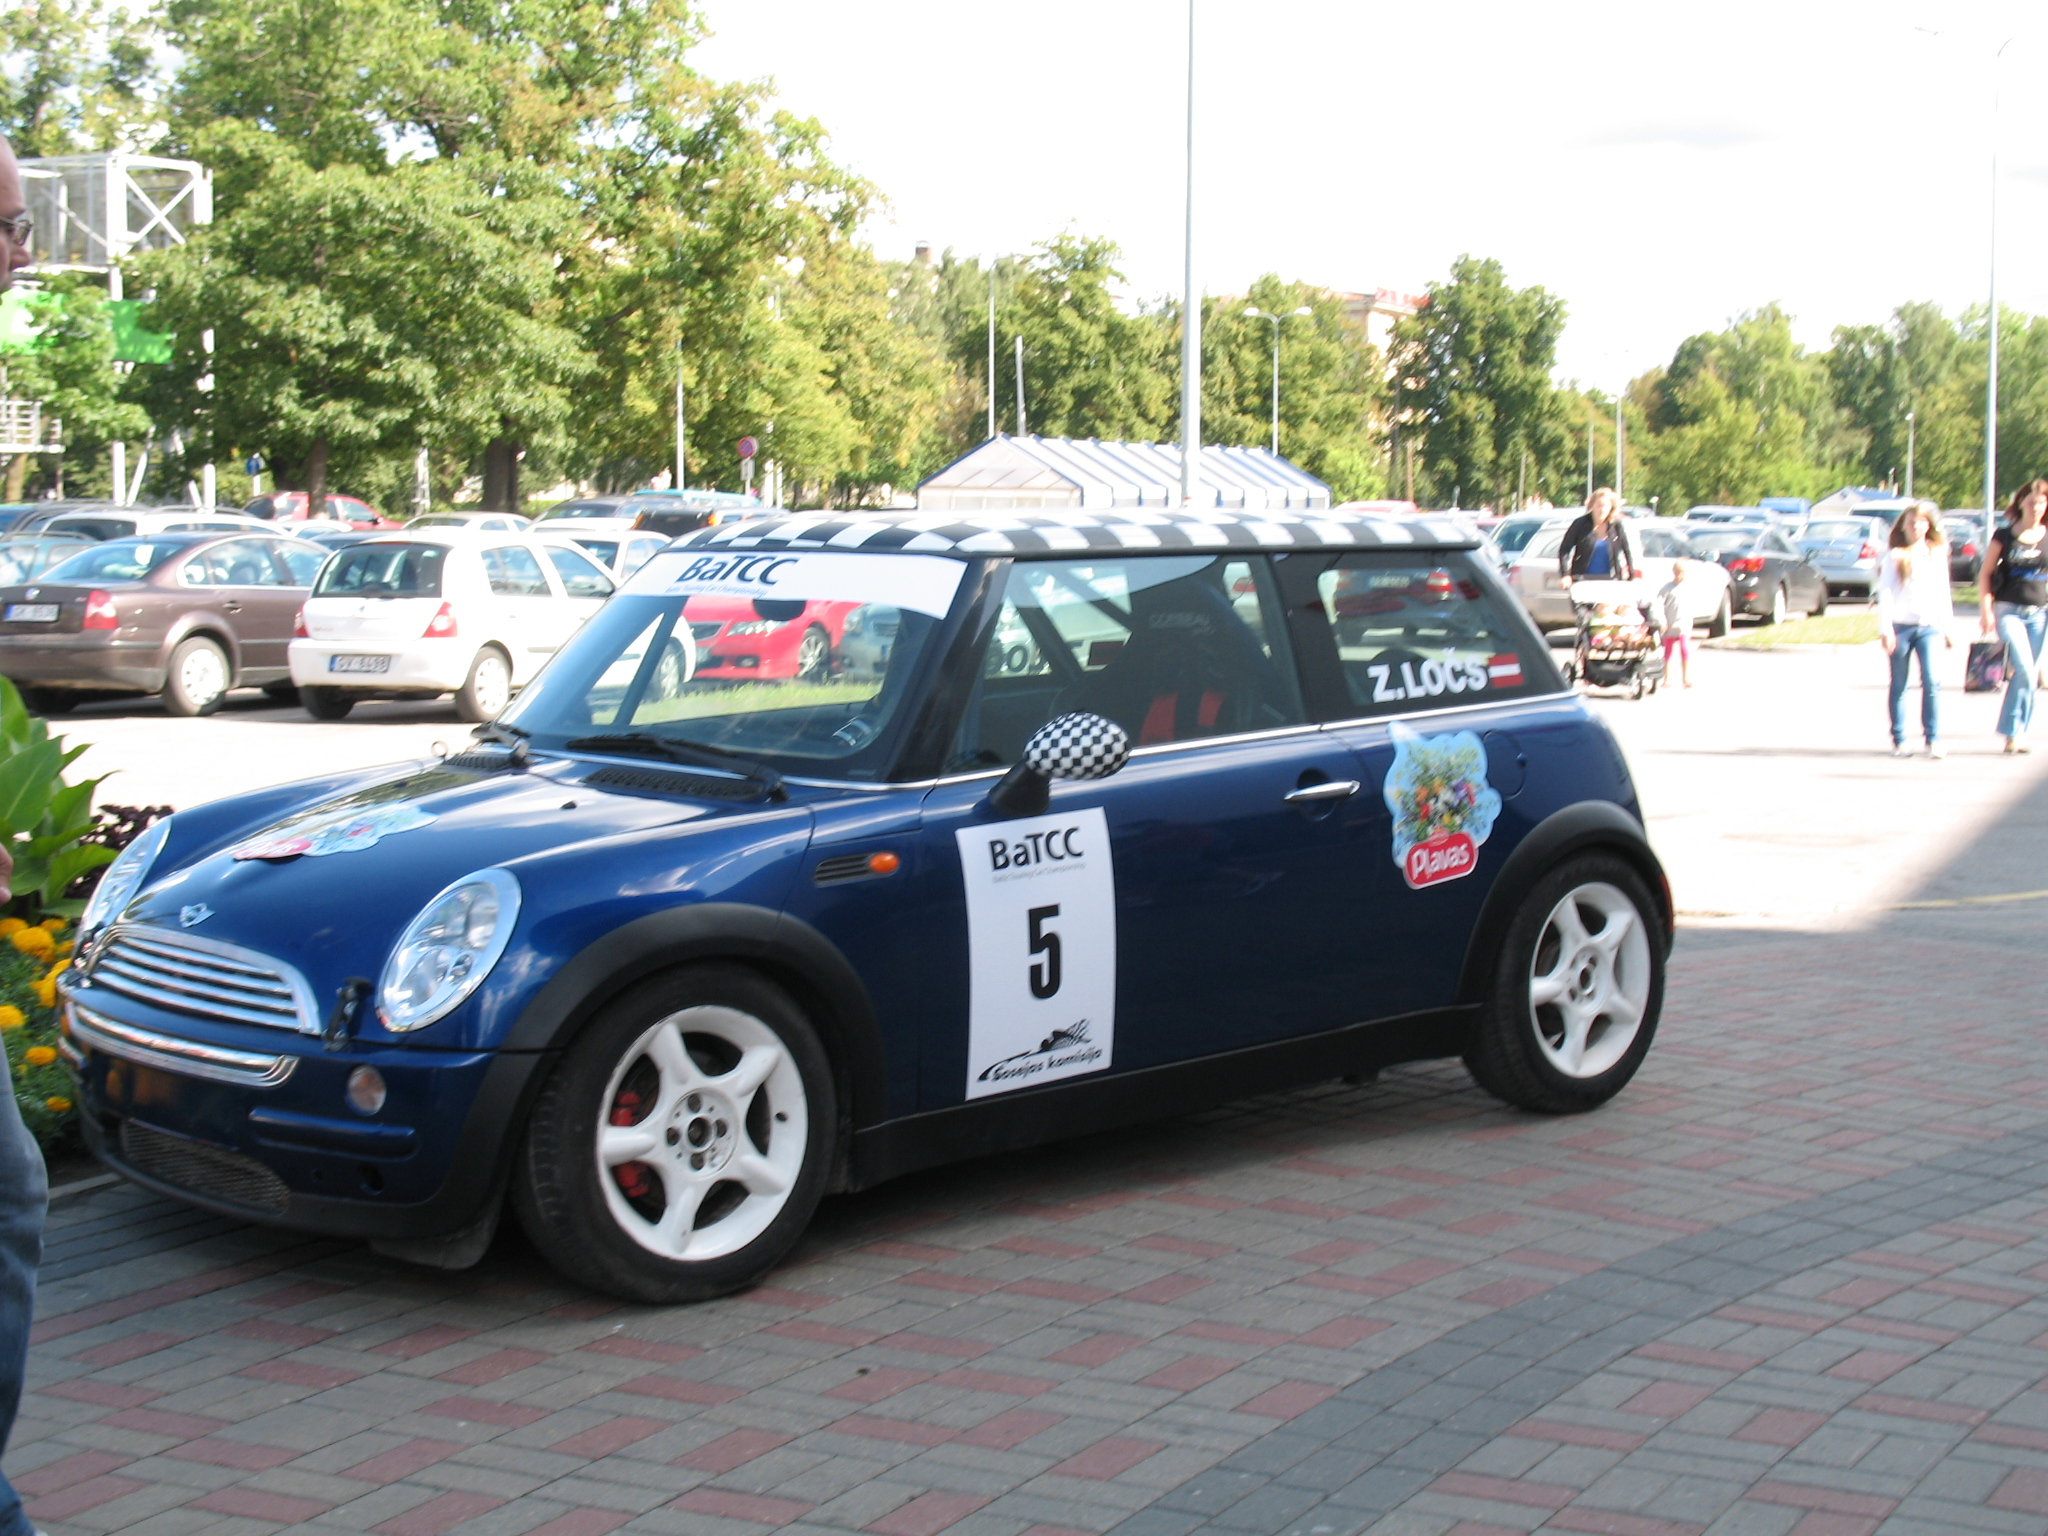 Mini cooper race cars for sale at raced rallied for Mini motor cars for sale